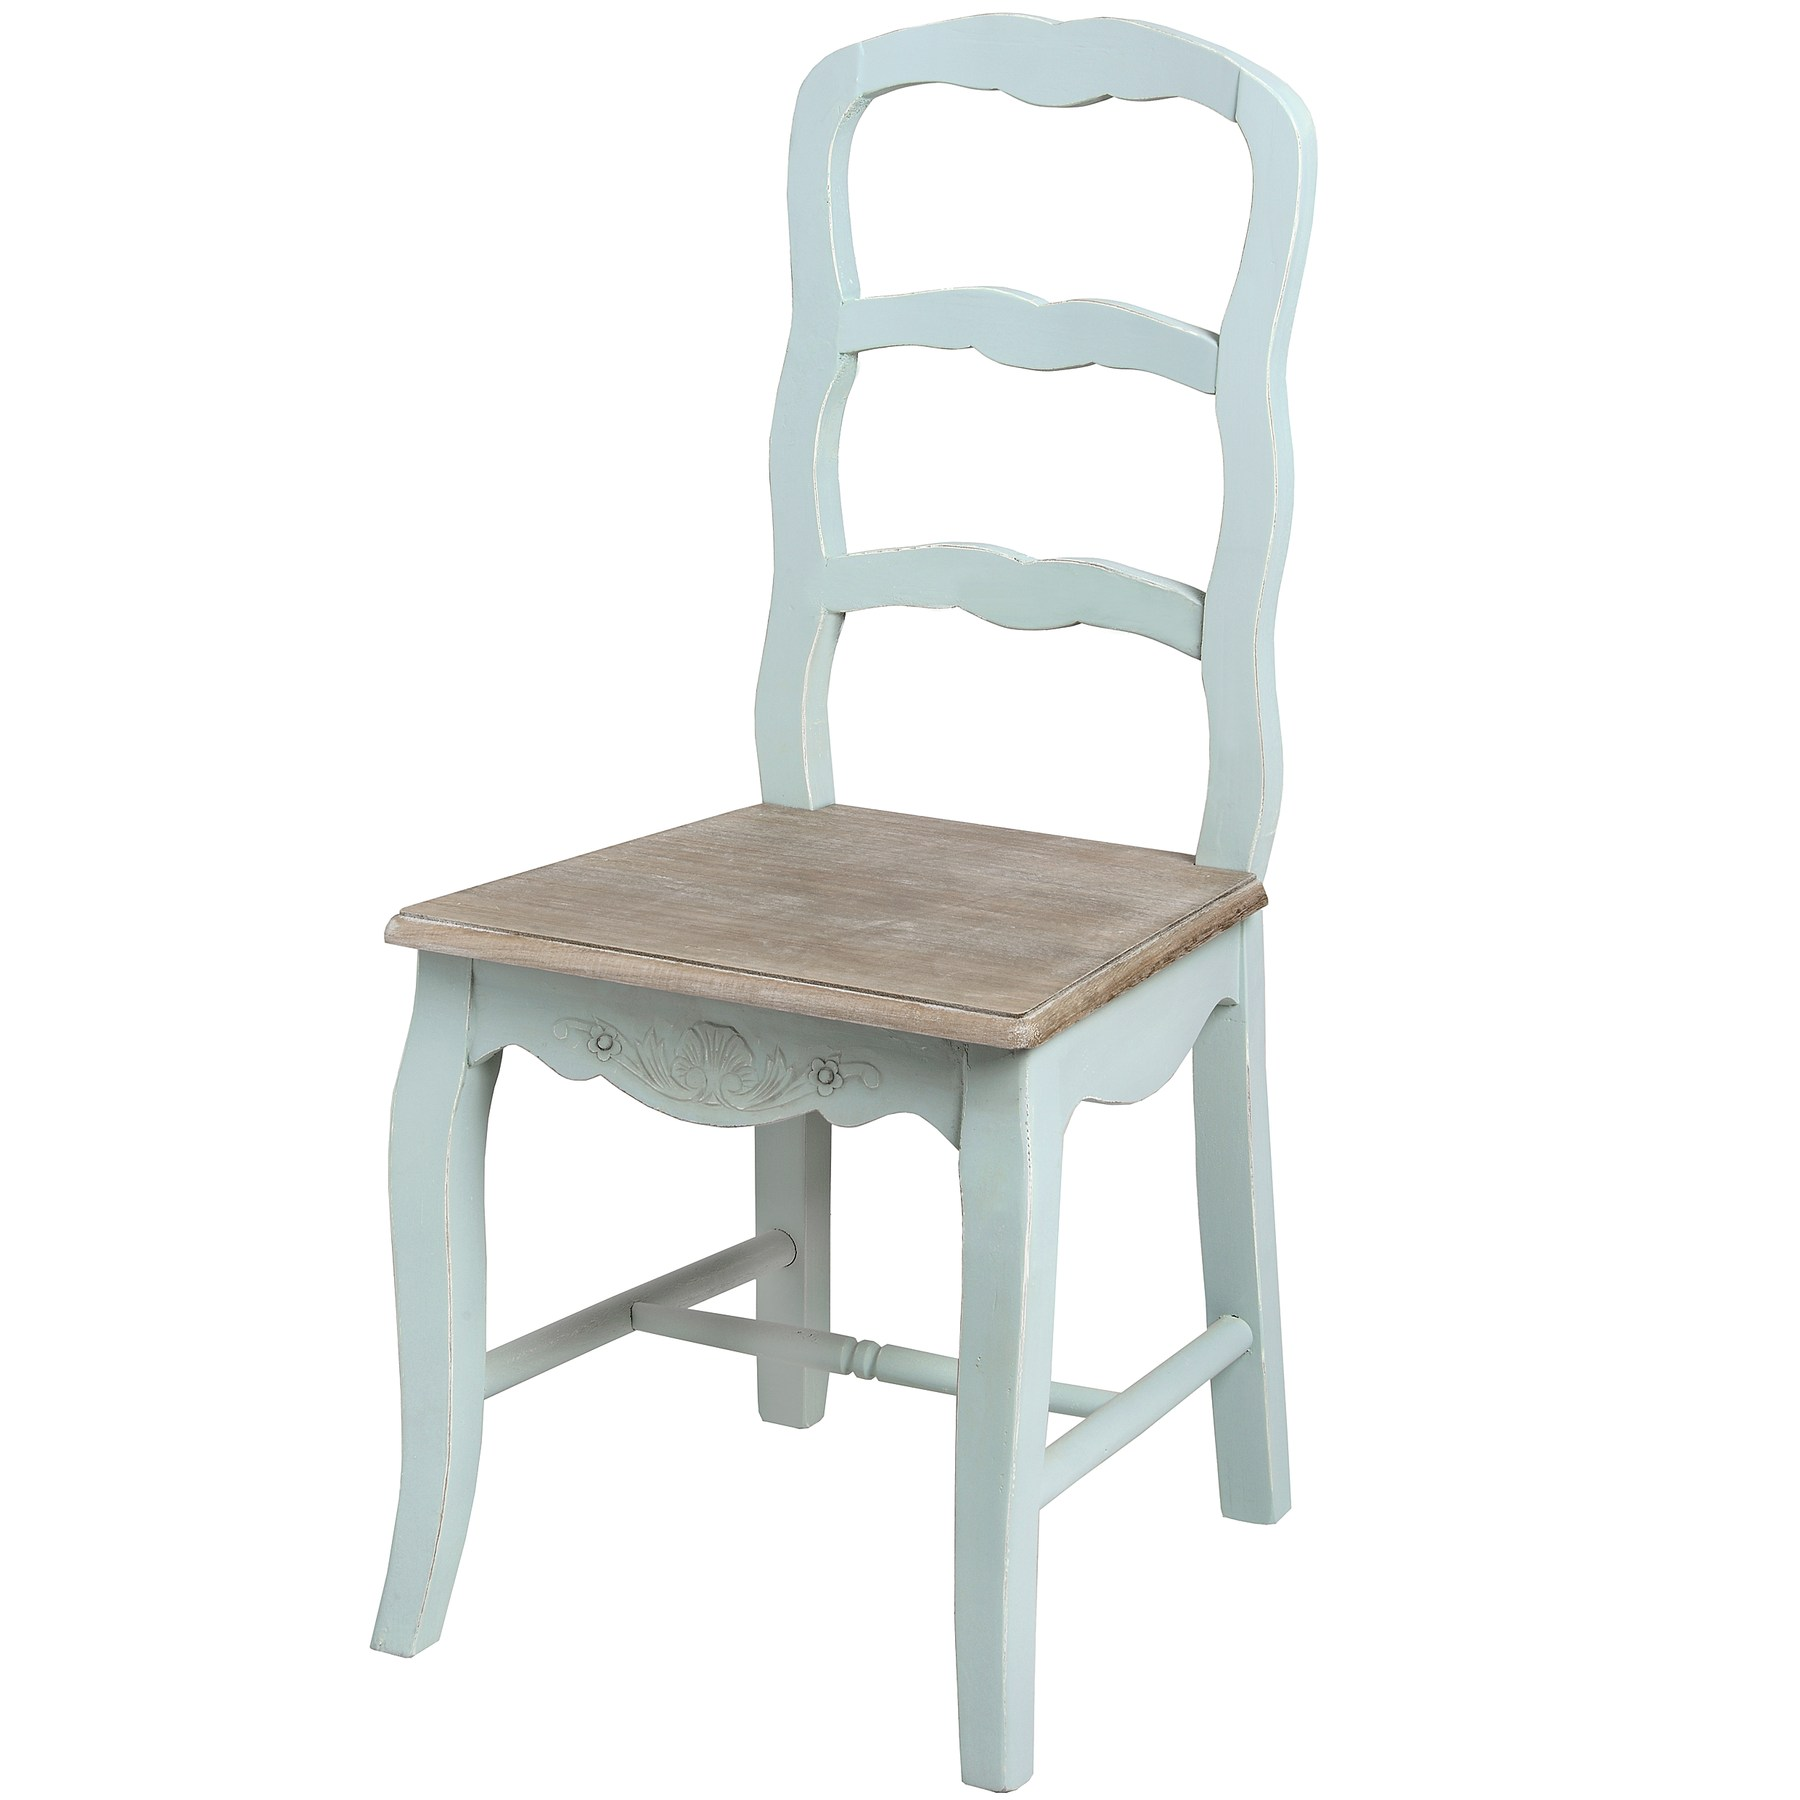 Genevieve Range dining table chair